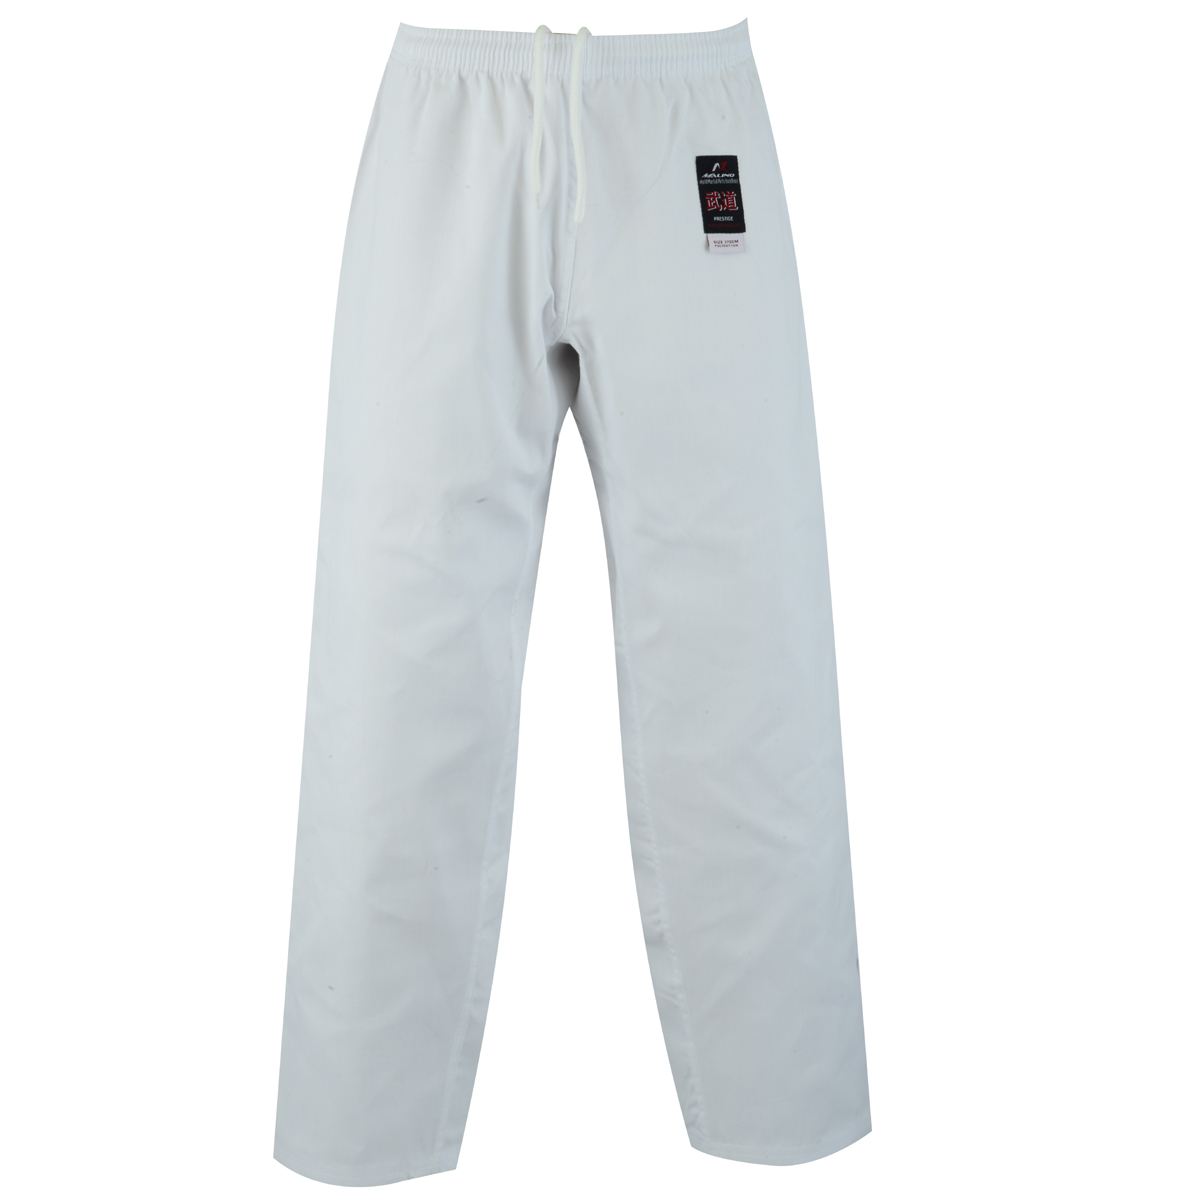 Malino Kids Student Karate Trousers PC White - 7oz